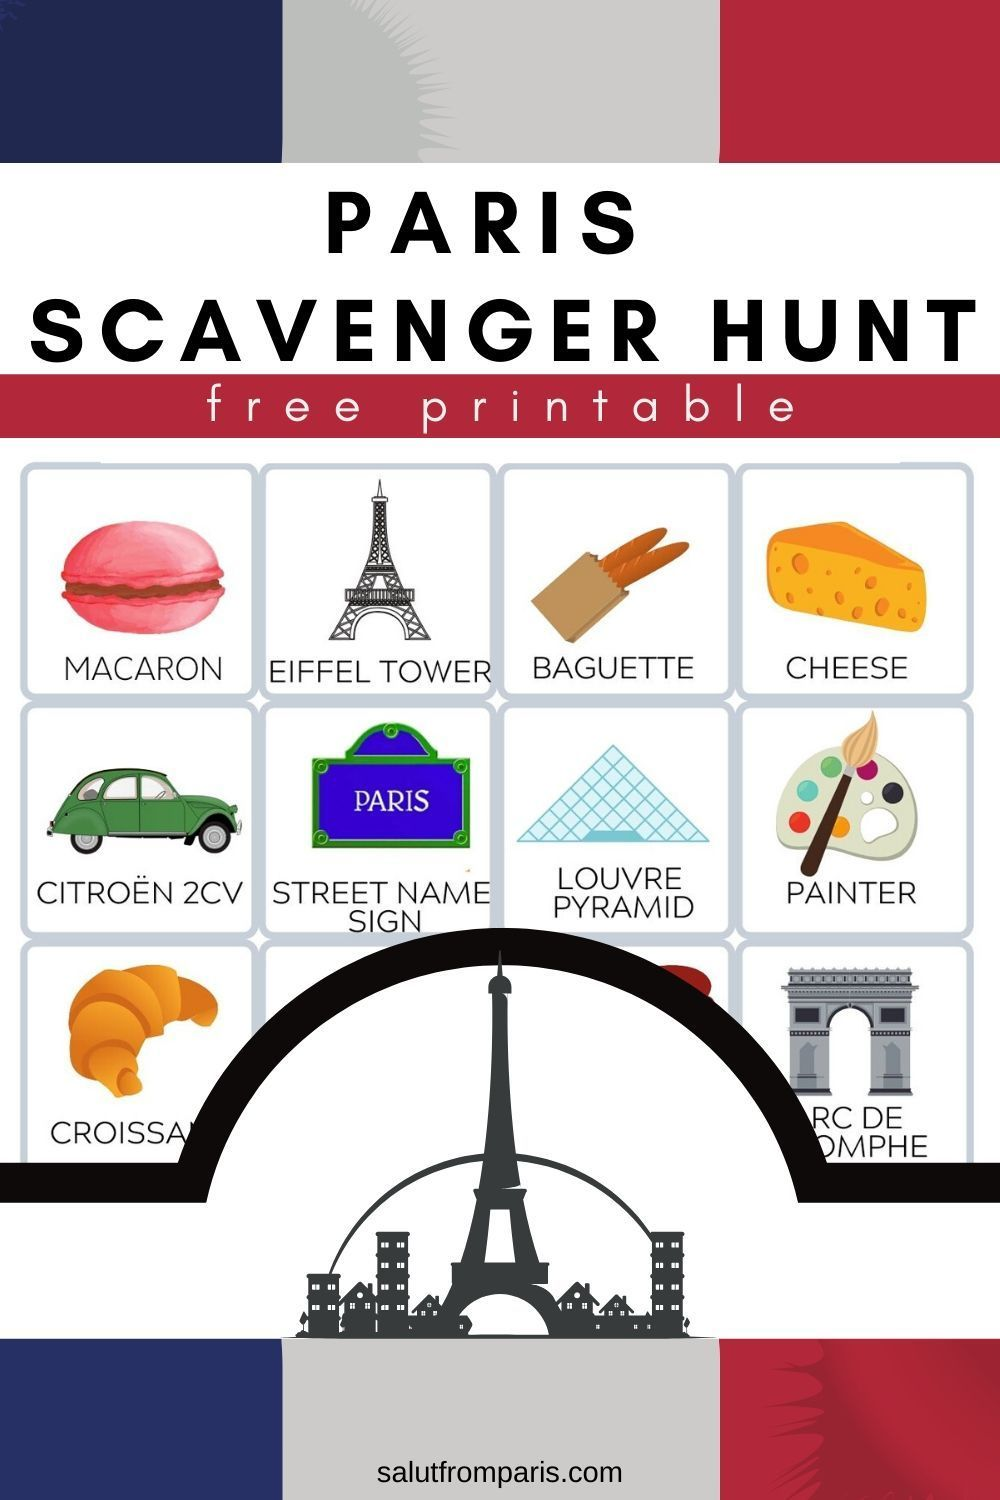 entertain your kids in Pairs with this free Scavenger Hunt